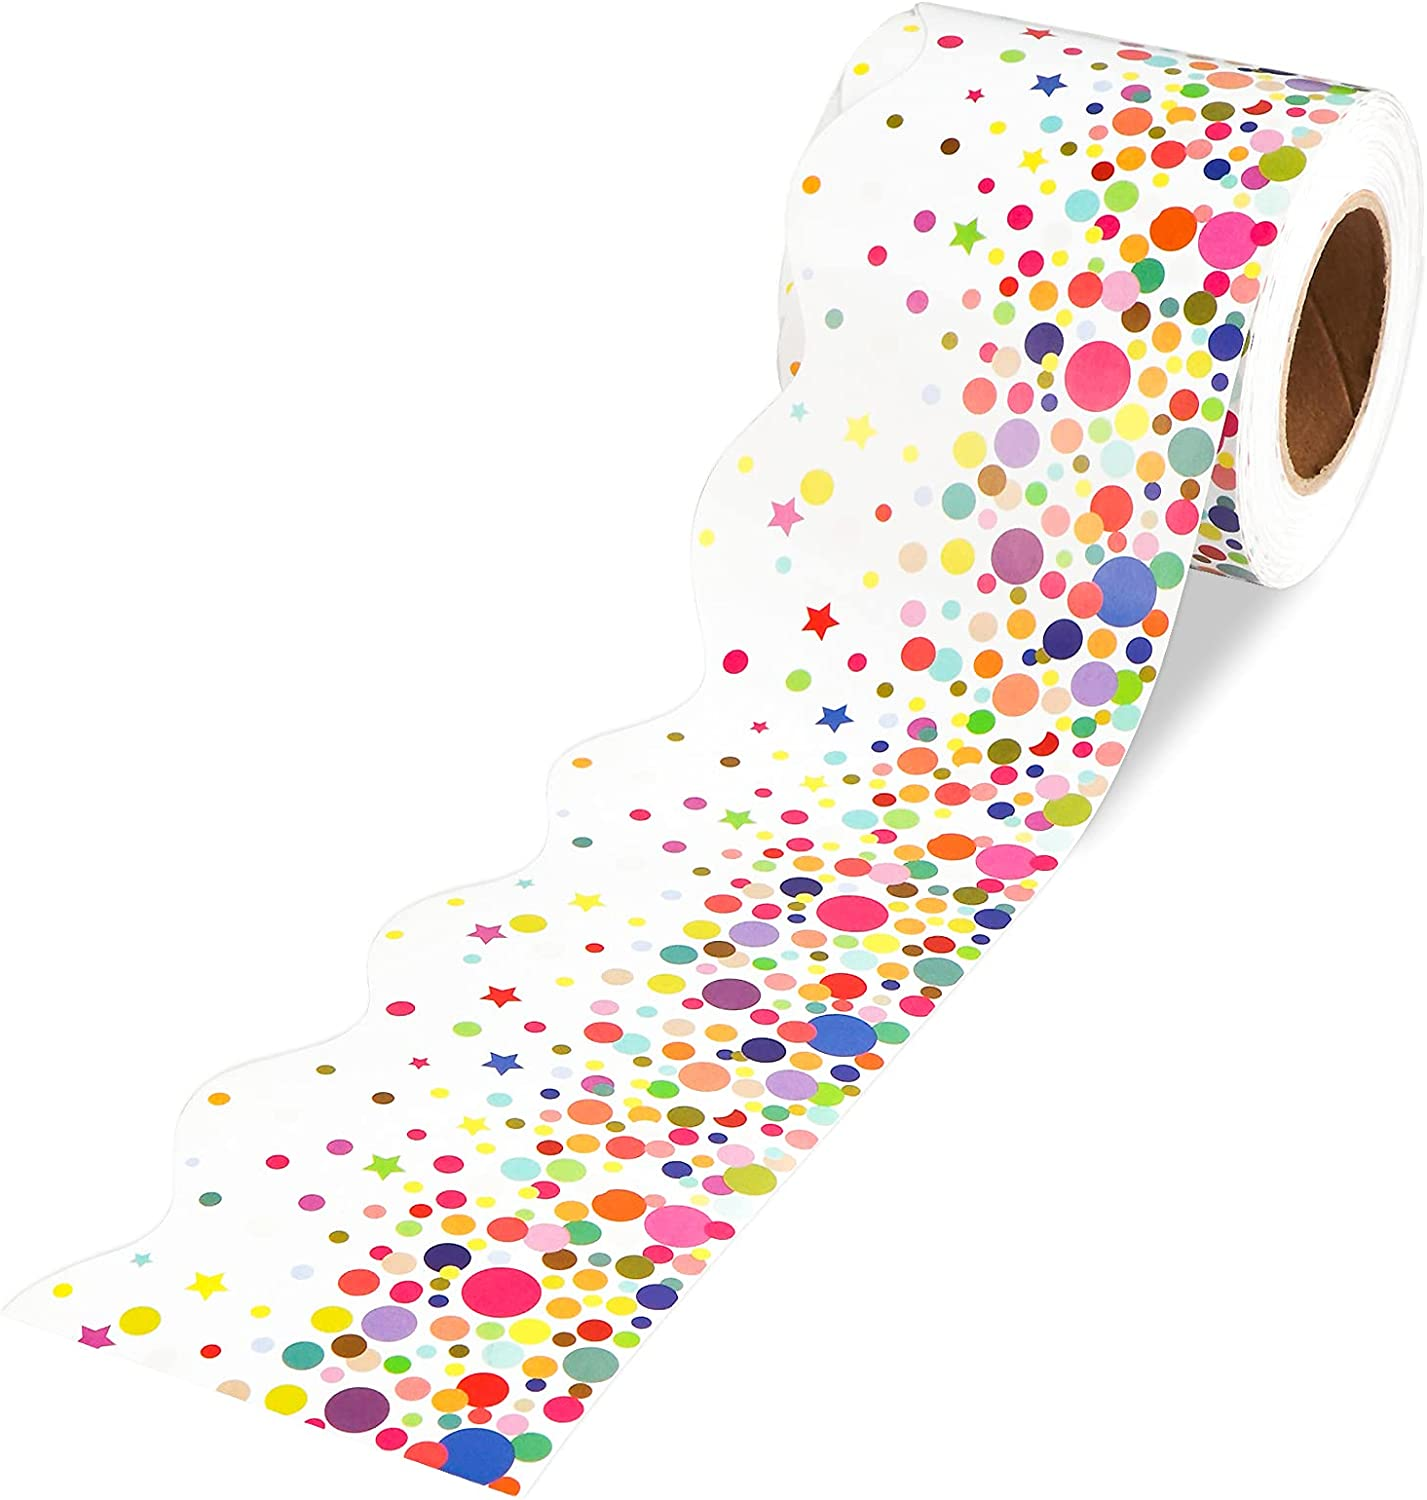 OFFicial shop 64 Feet Confetti Bulletin Board Free shipping anywhere in the nation Decoration Classroom Borders for